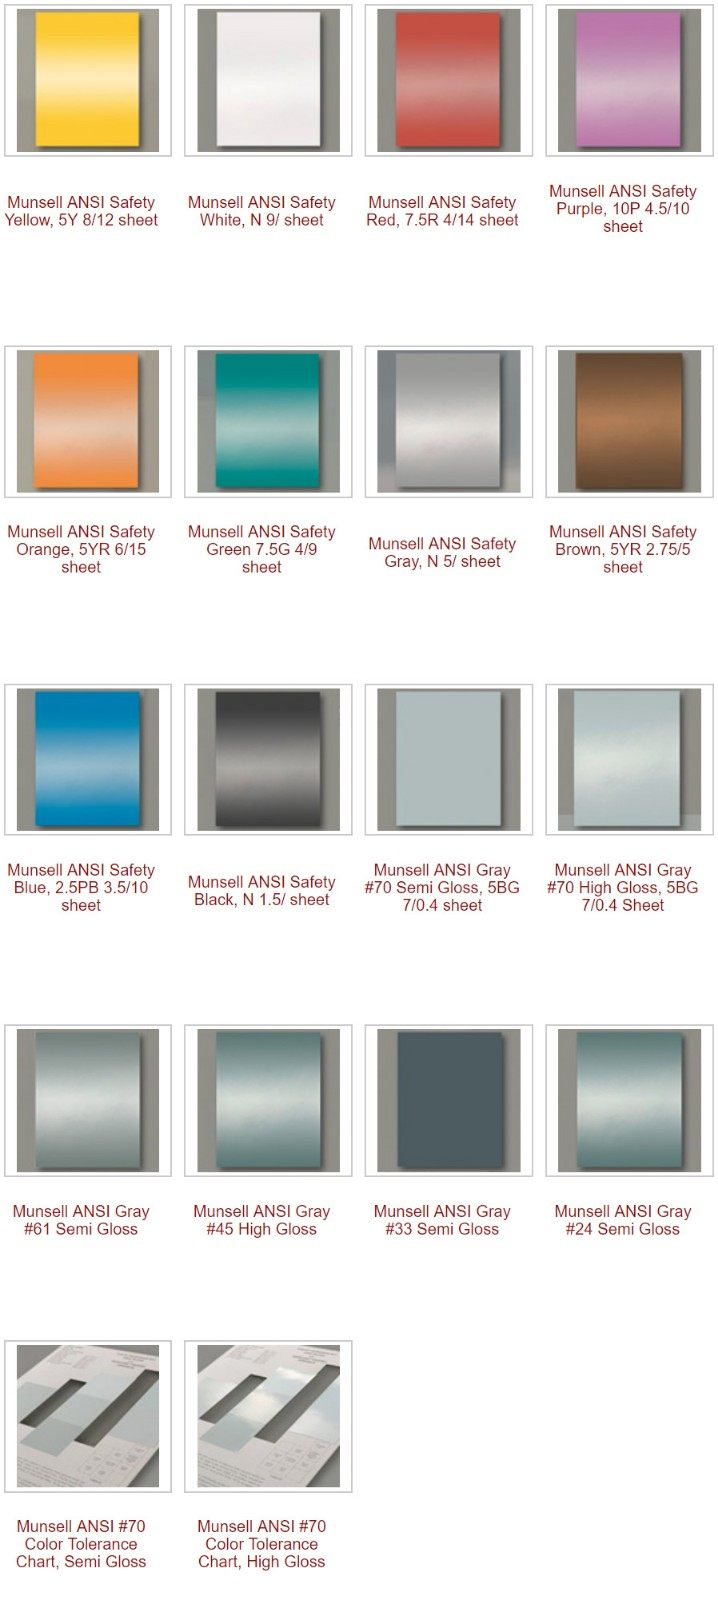 Munsell ANSI color Standards